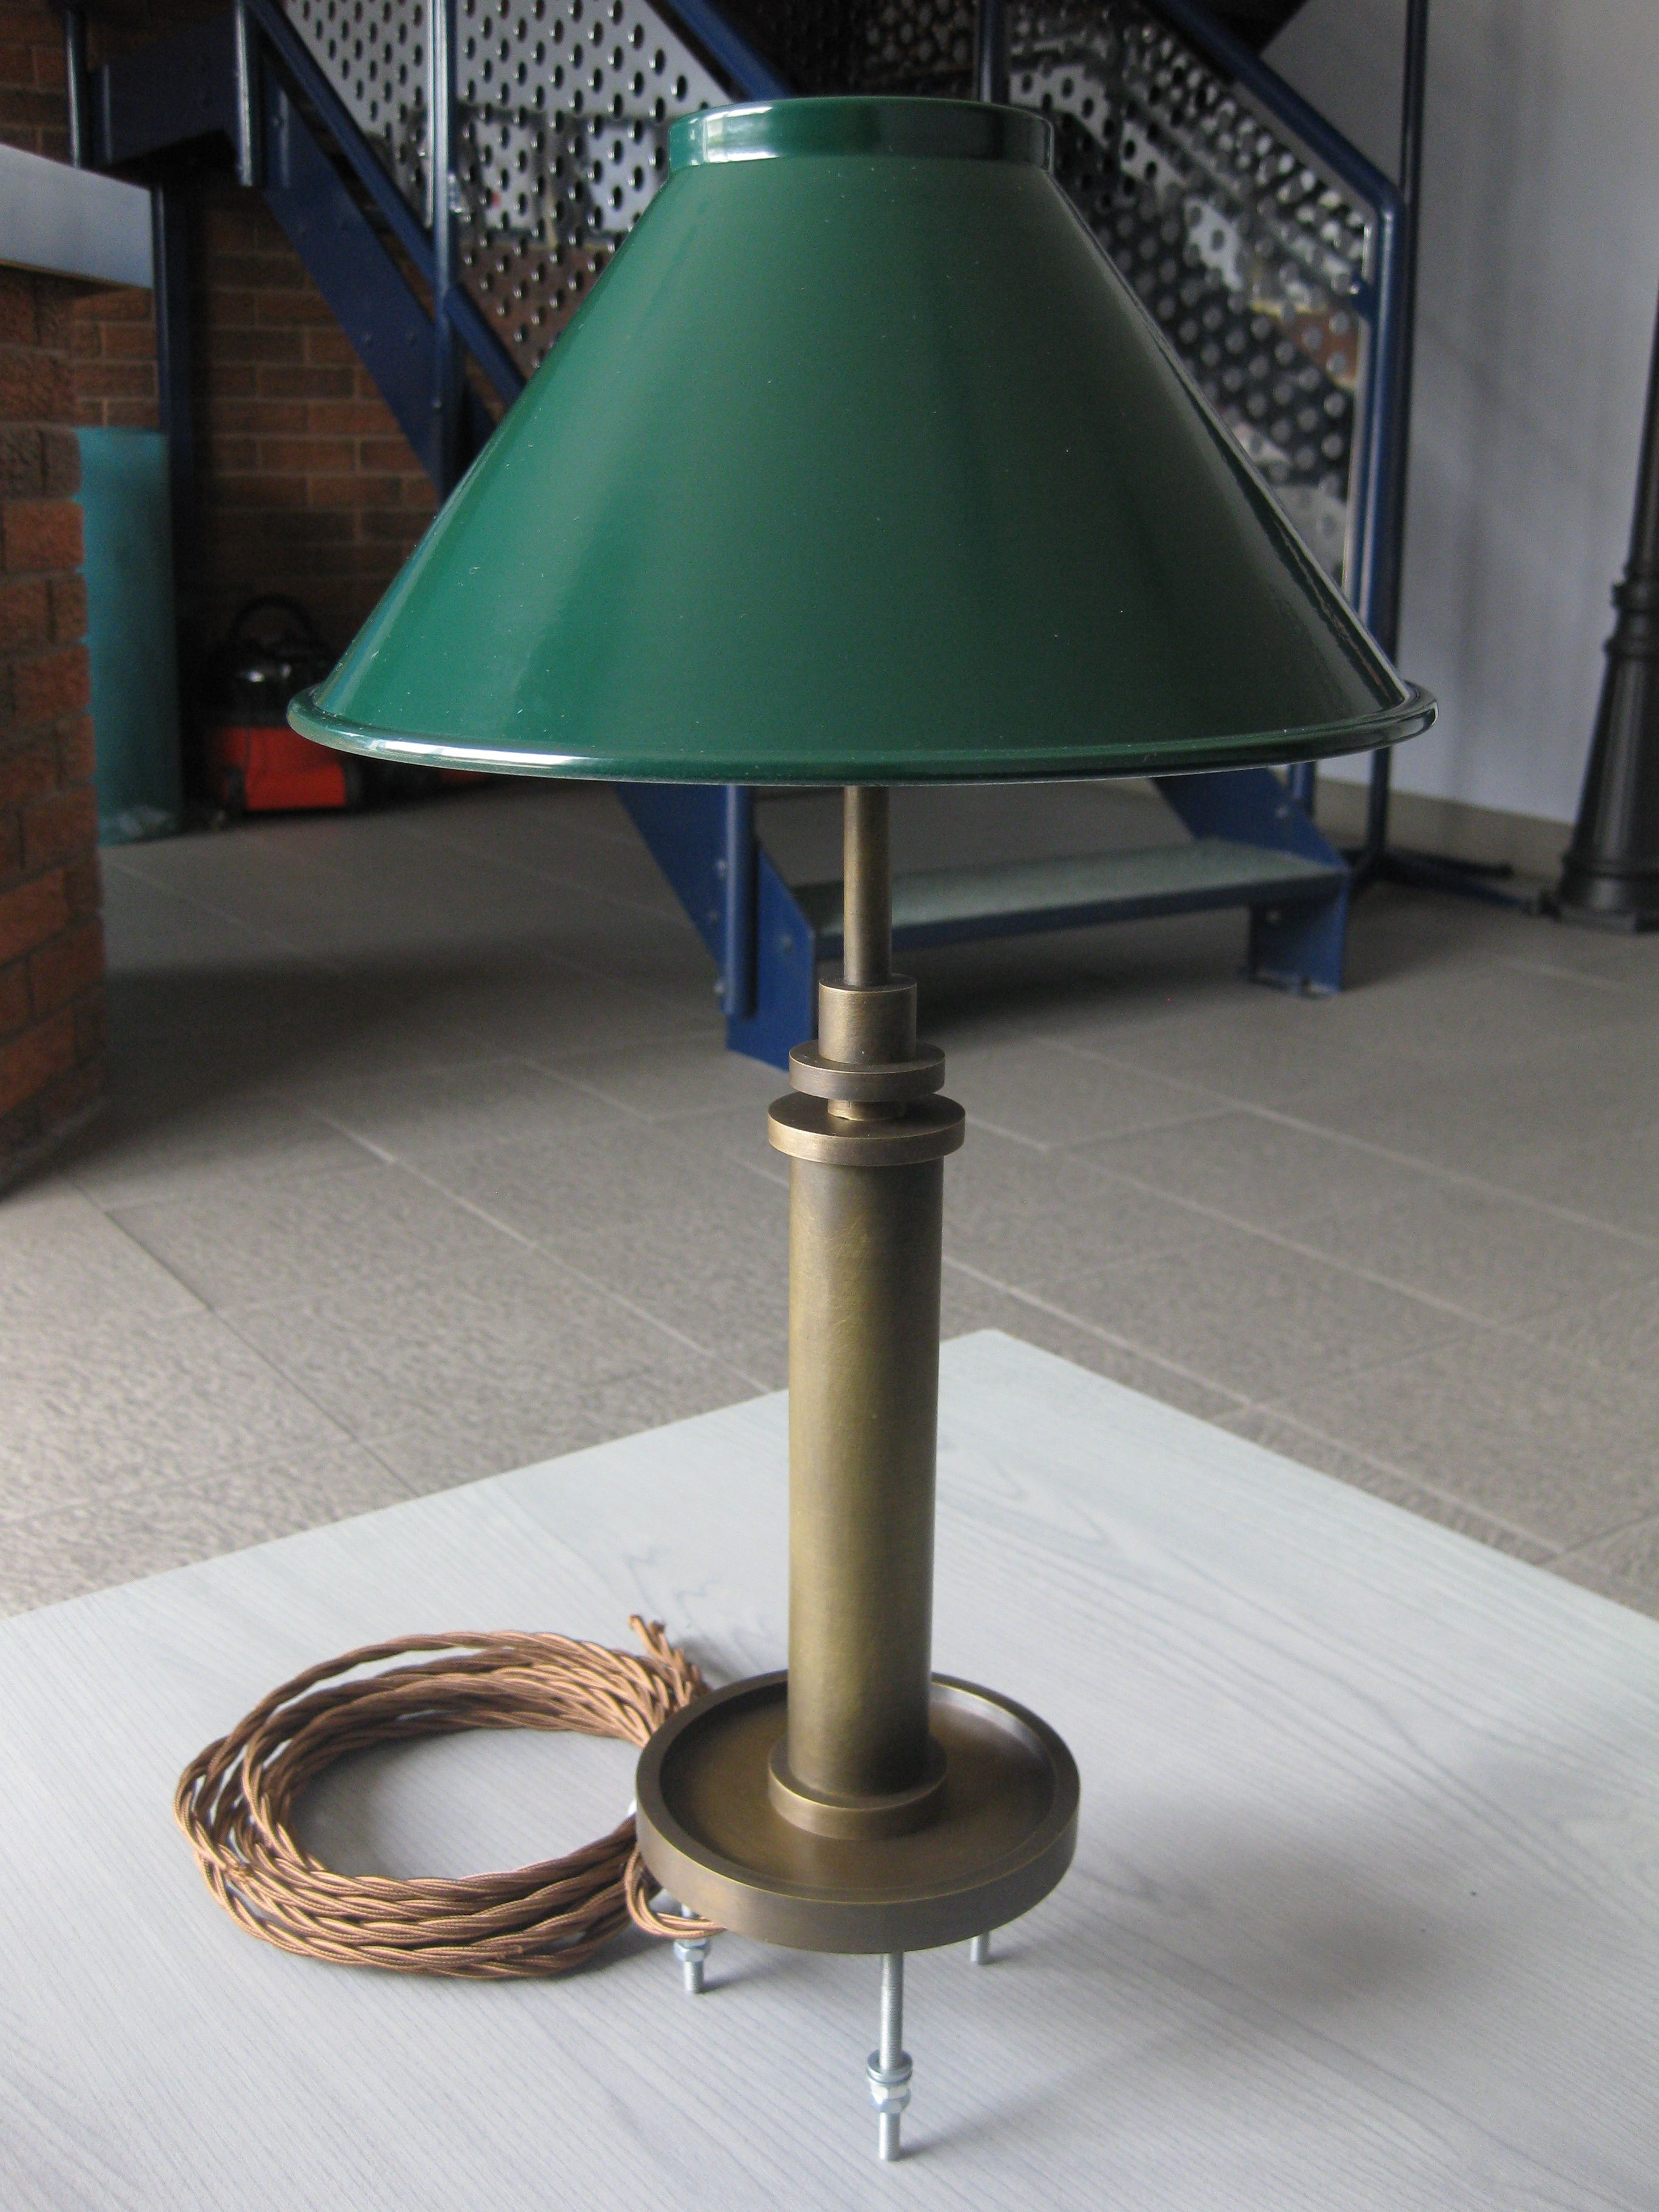 Perfect Metro Lighting Custom Counter Mounted Table Lamp With Green Spun Metal  Coolie Shade Constructed From Brass